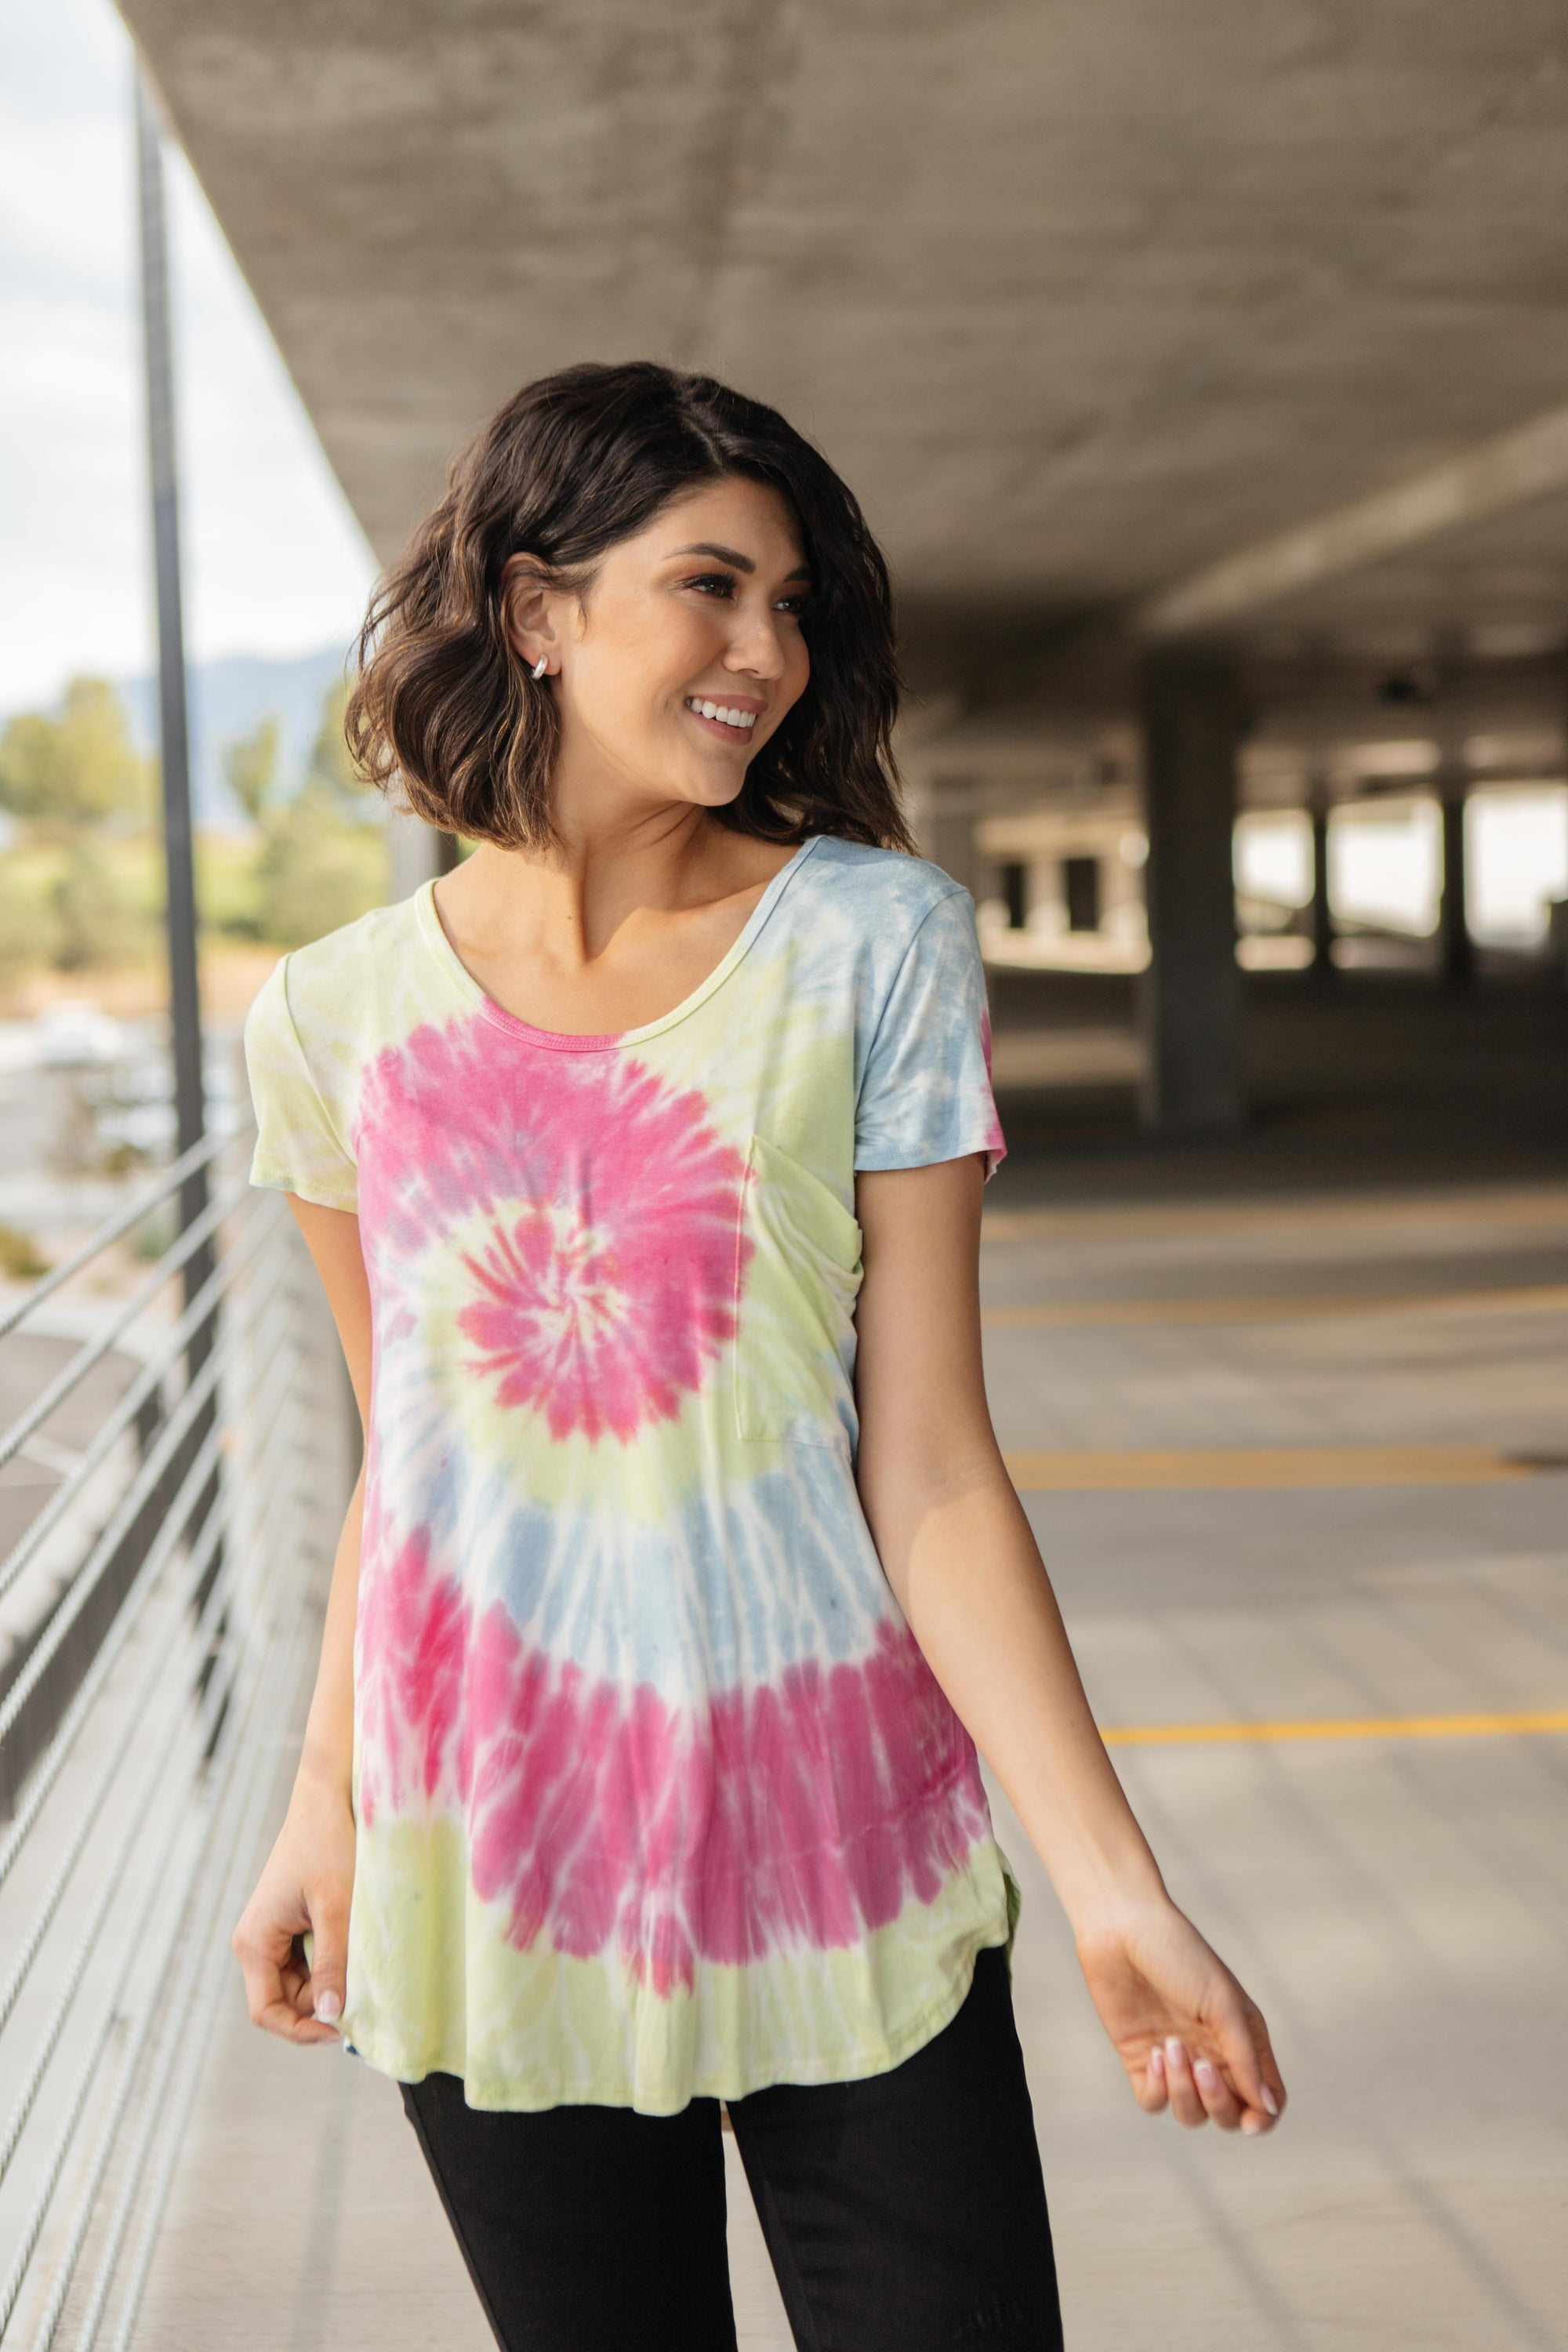 Sassy Swirl Tie Dye Tee In Hot Pink-[option4]-[option5]-[option6]-[option7]-[option8]-Womens-Clothing-Shop